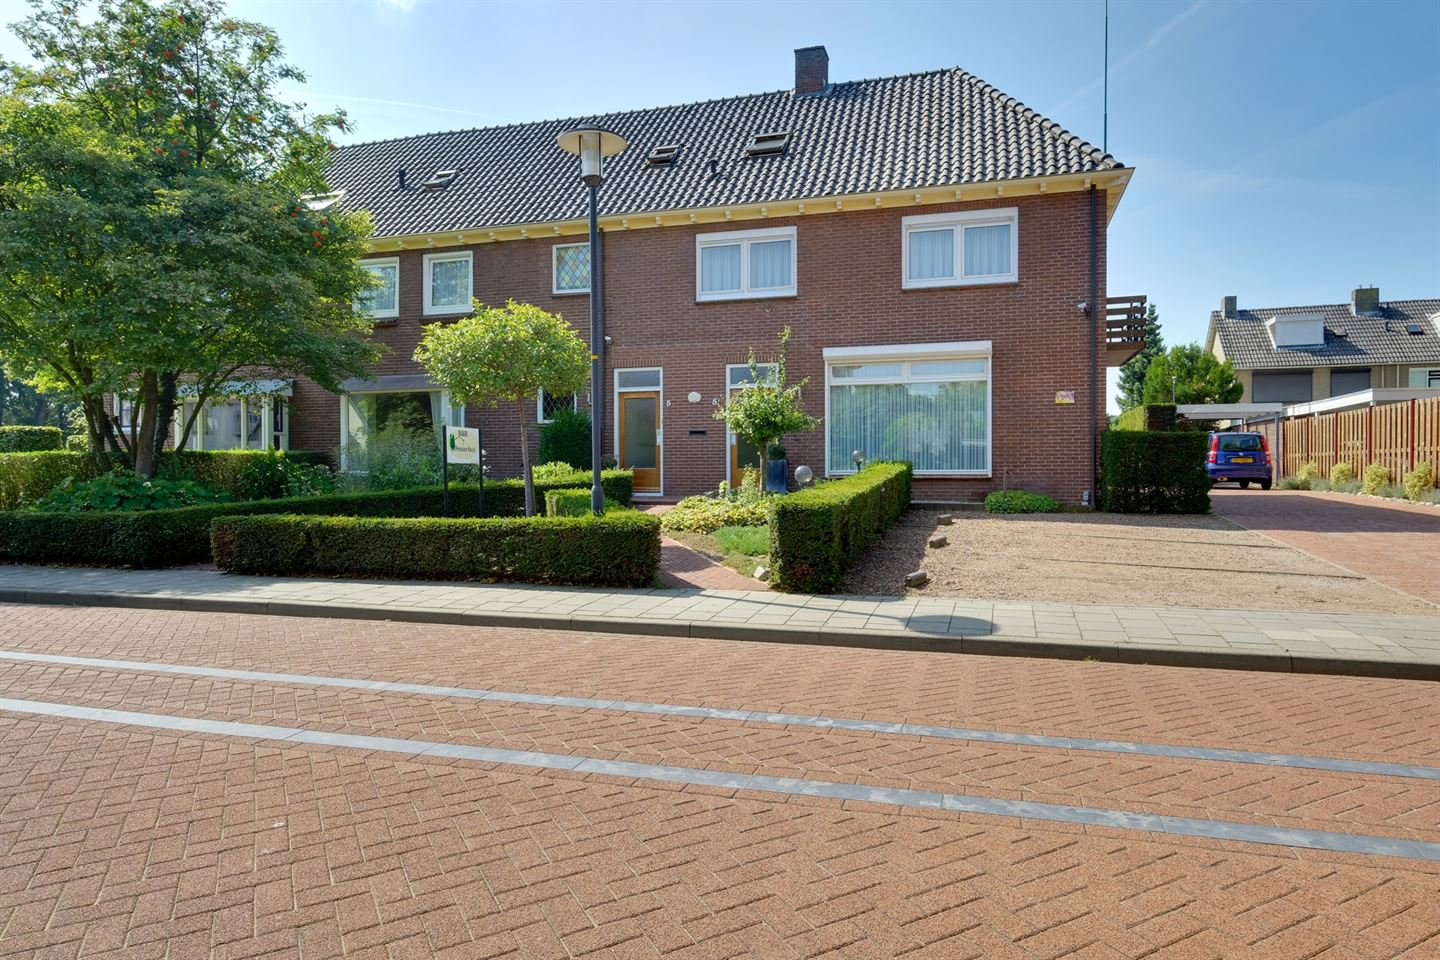 View photo 1 of Oude Doetinchemseweg 5 a